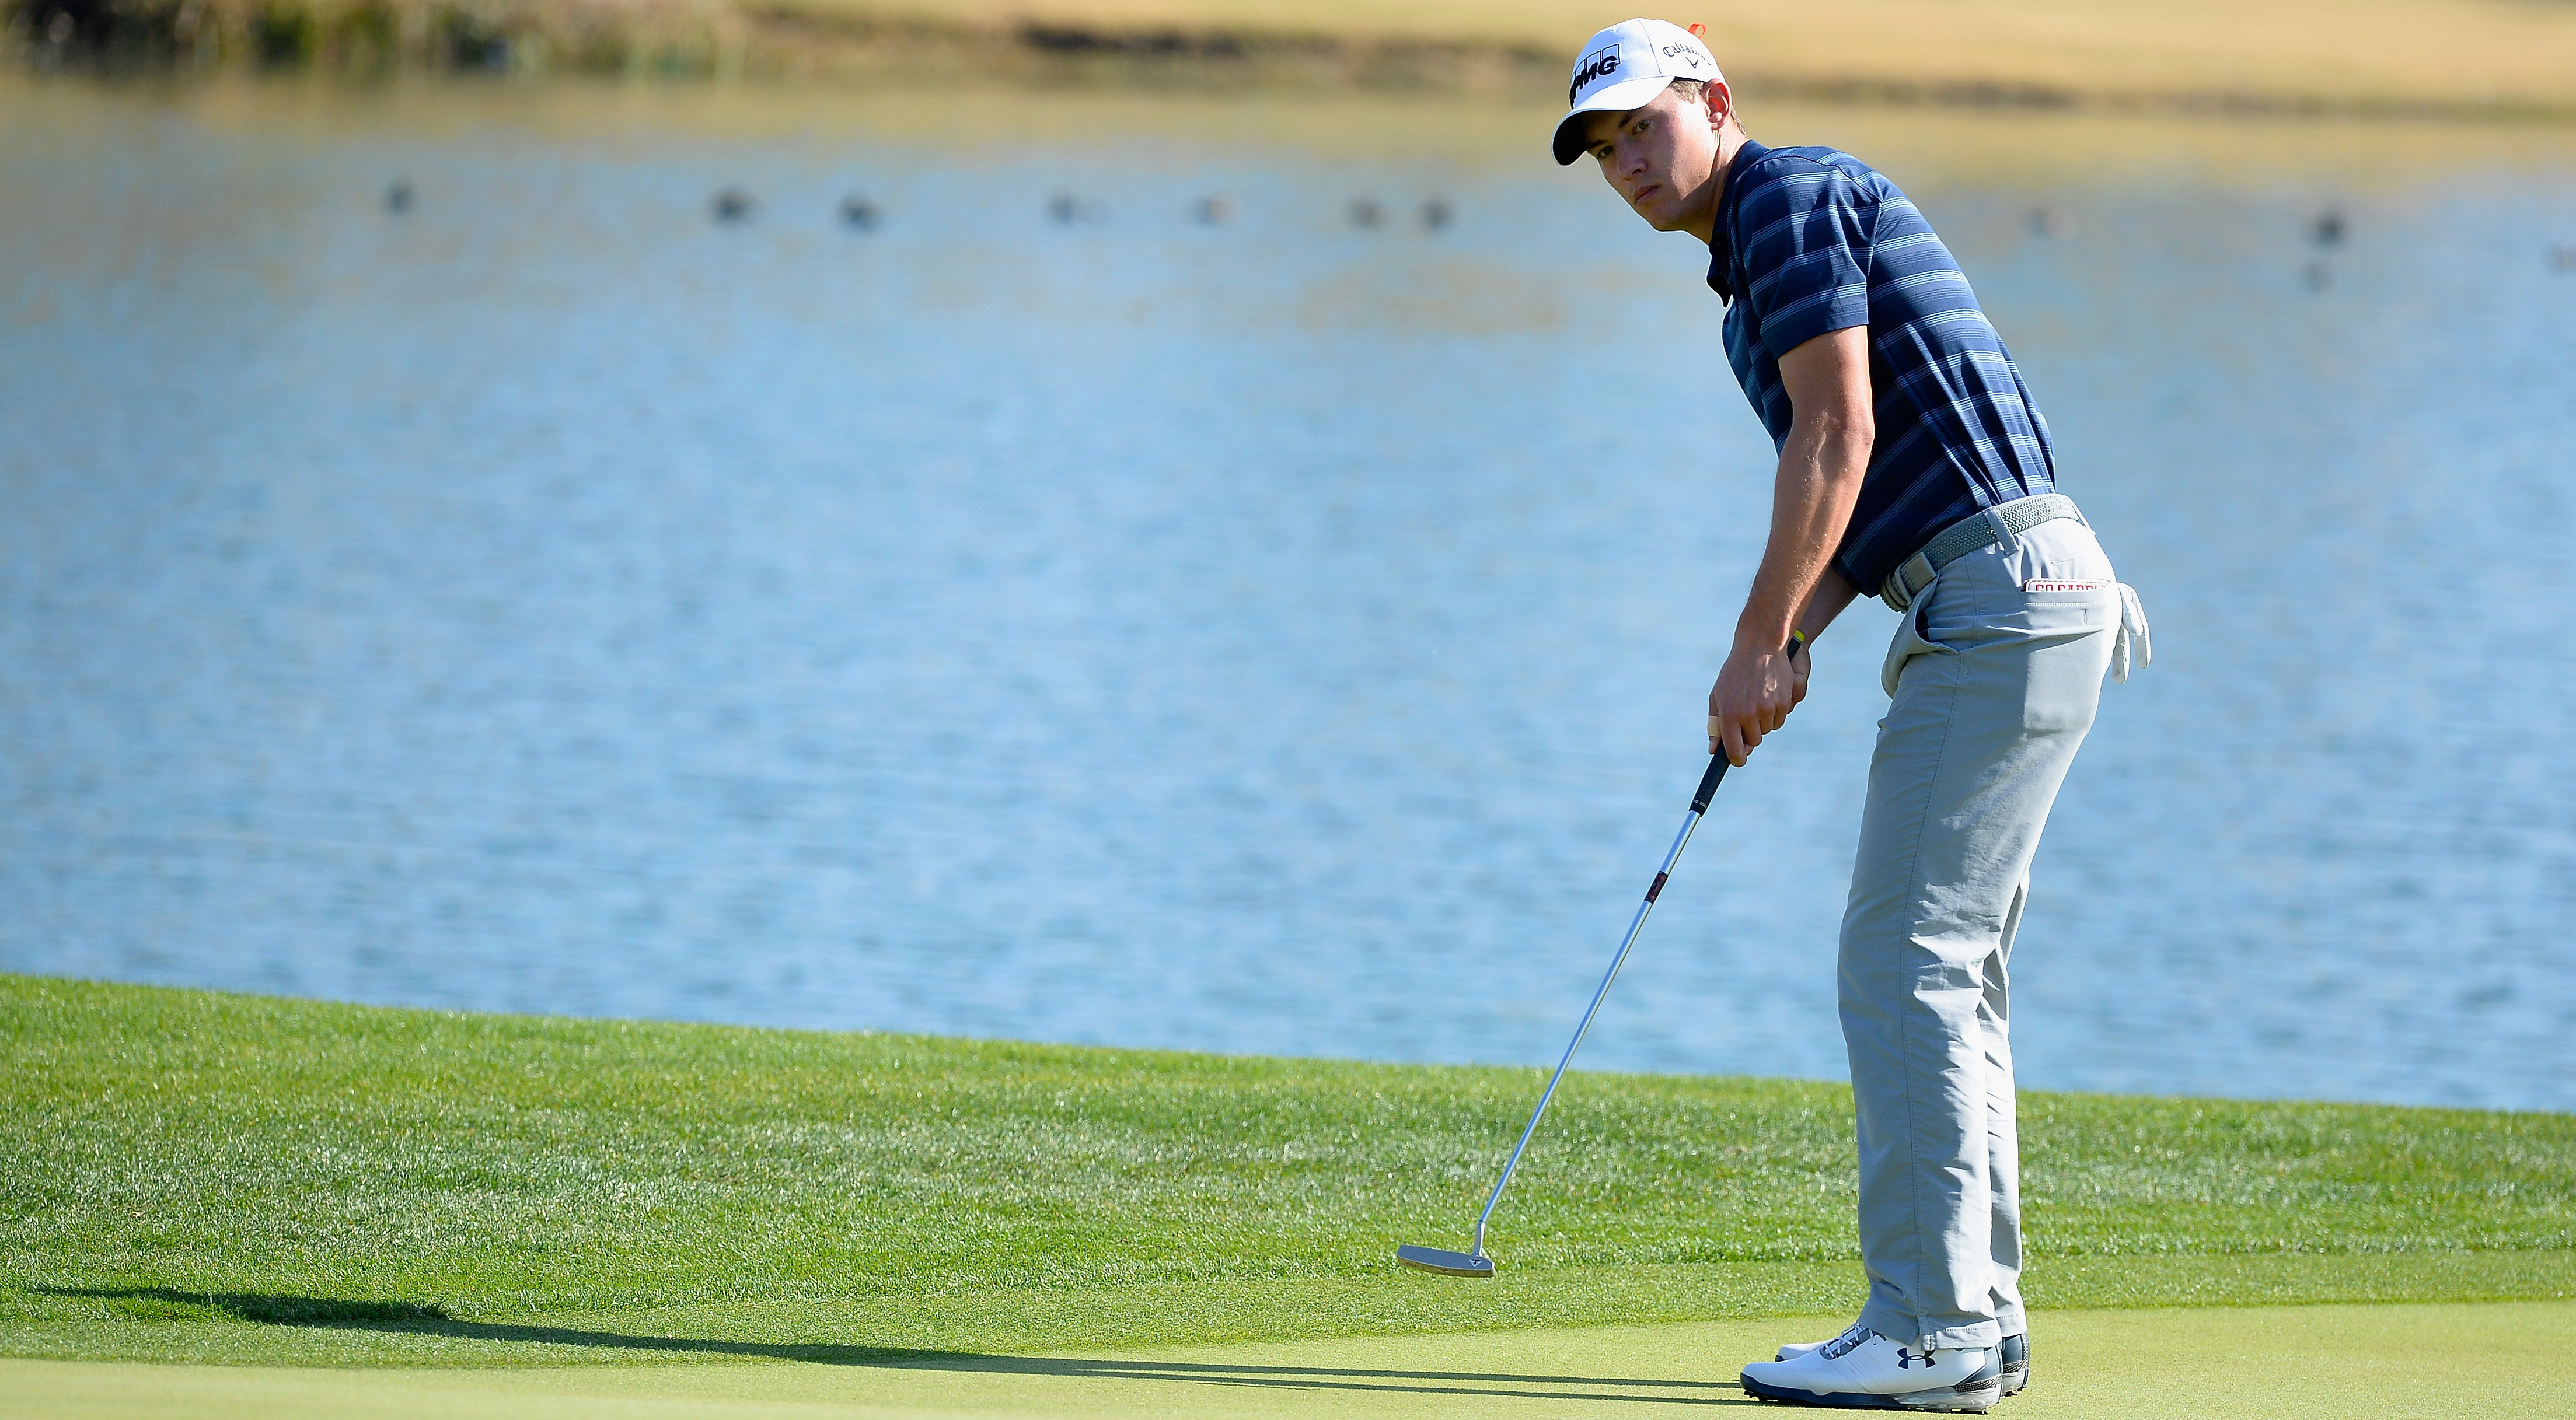 maverick mcnealy committed to  u0026 39 ones and zeroes u0026 39  at